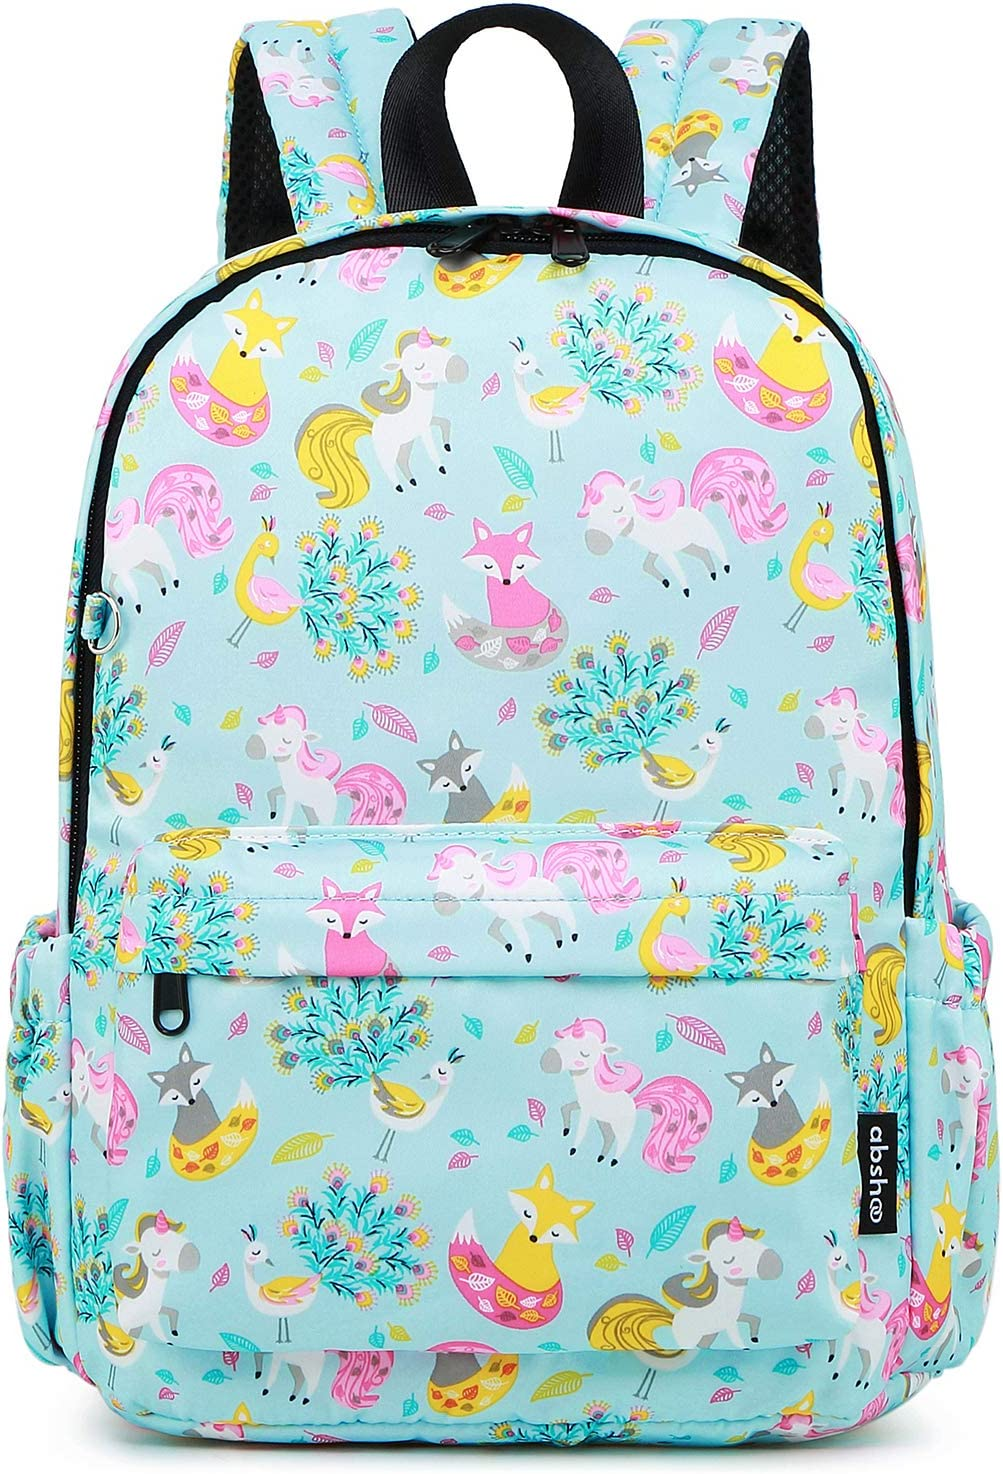 Abshoo Little Kids Unicorn Toddler Backpacks for Girls Preschool Backpack With Chest Strap